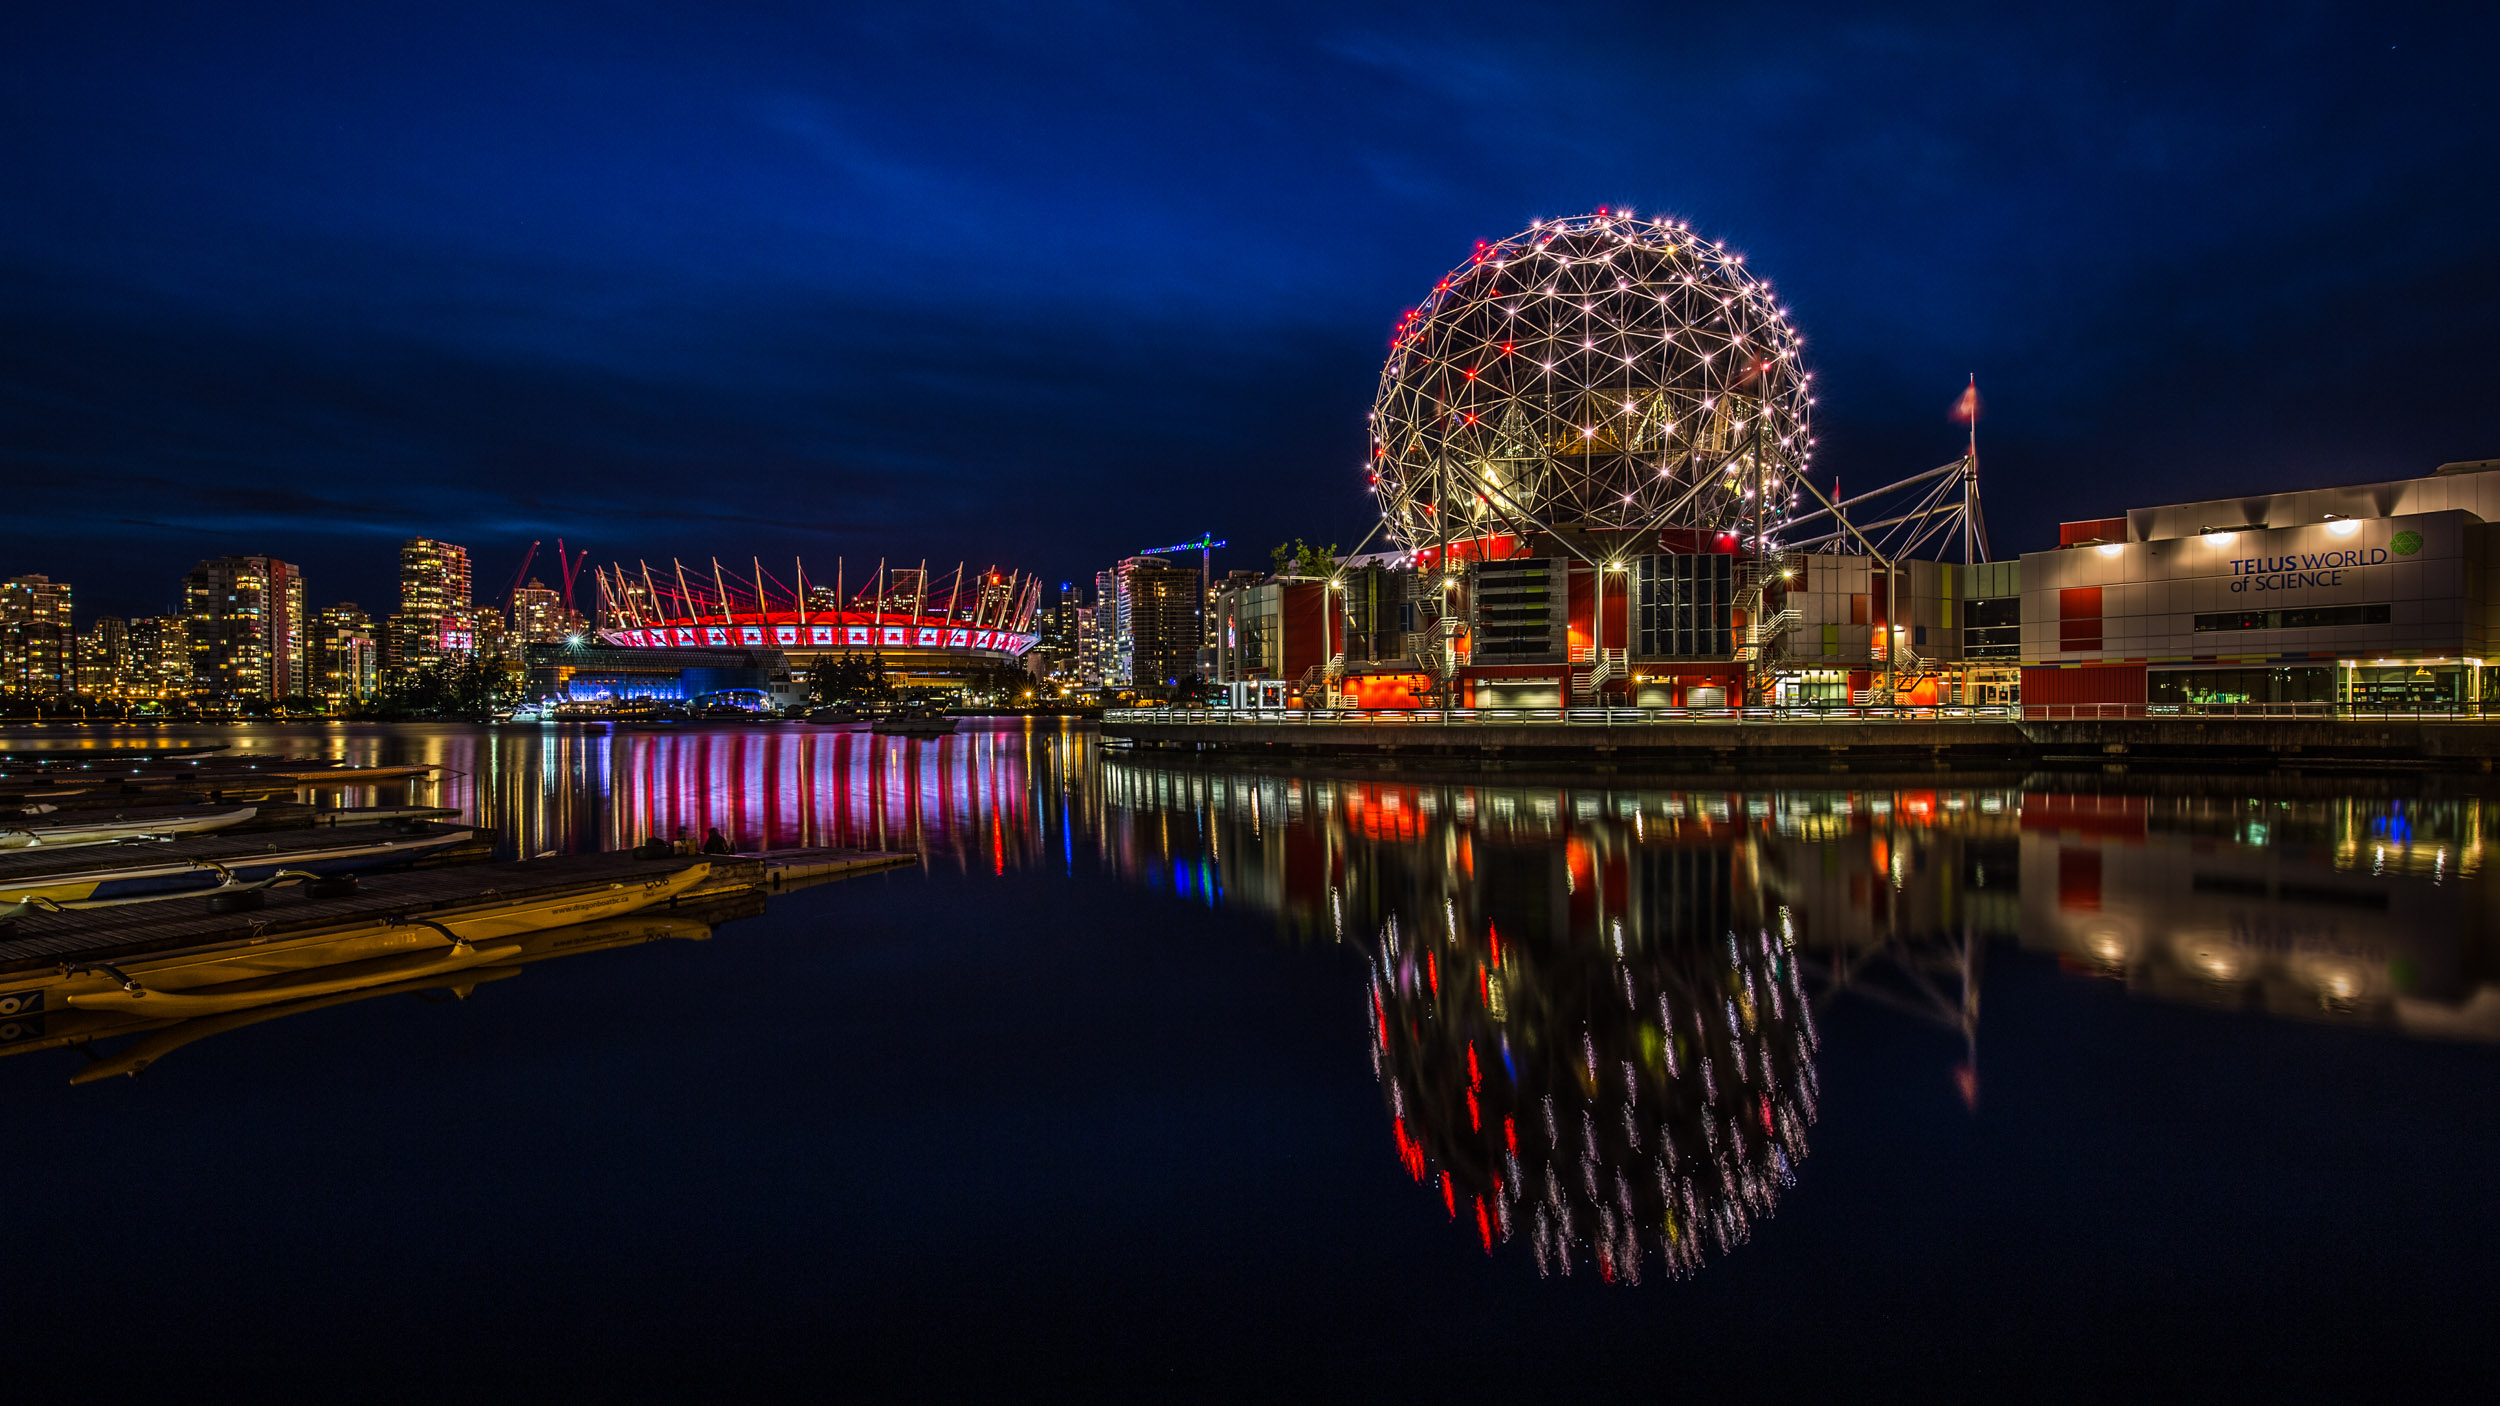 False Creek in Vancouver during the Blue Hour.